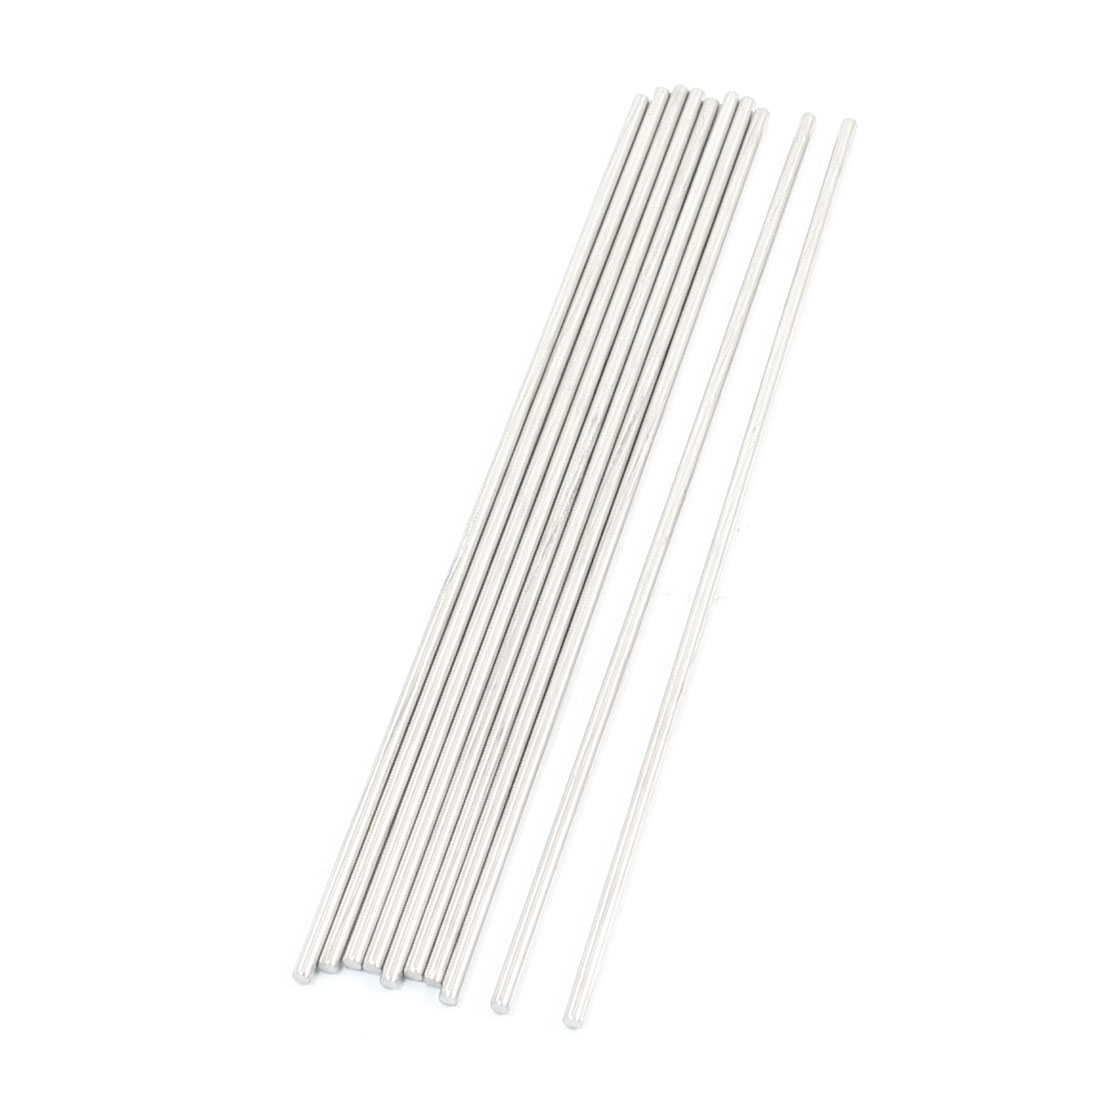 10Pcs 150 x 2.5mm Hardware Tools Stainless Steel Round Rods for Car Model